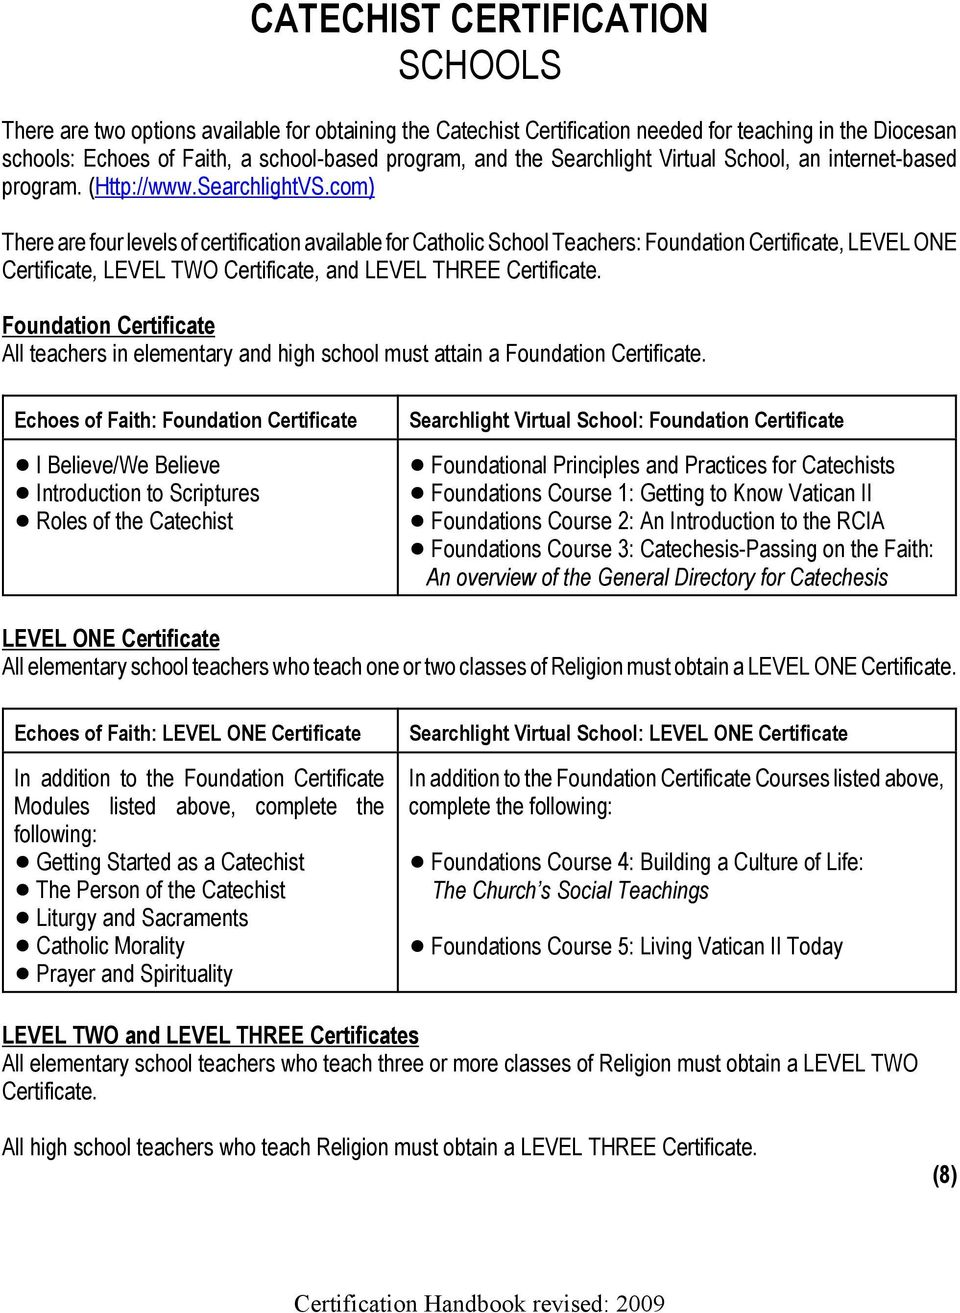 CERTIFICATE IN YOUTH MINISTRY STUDIES - PDF